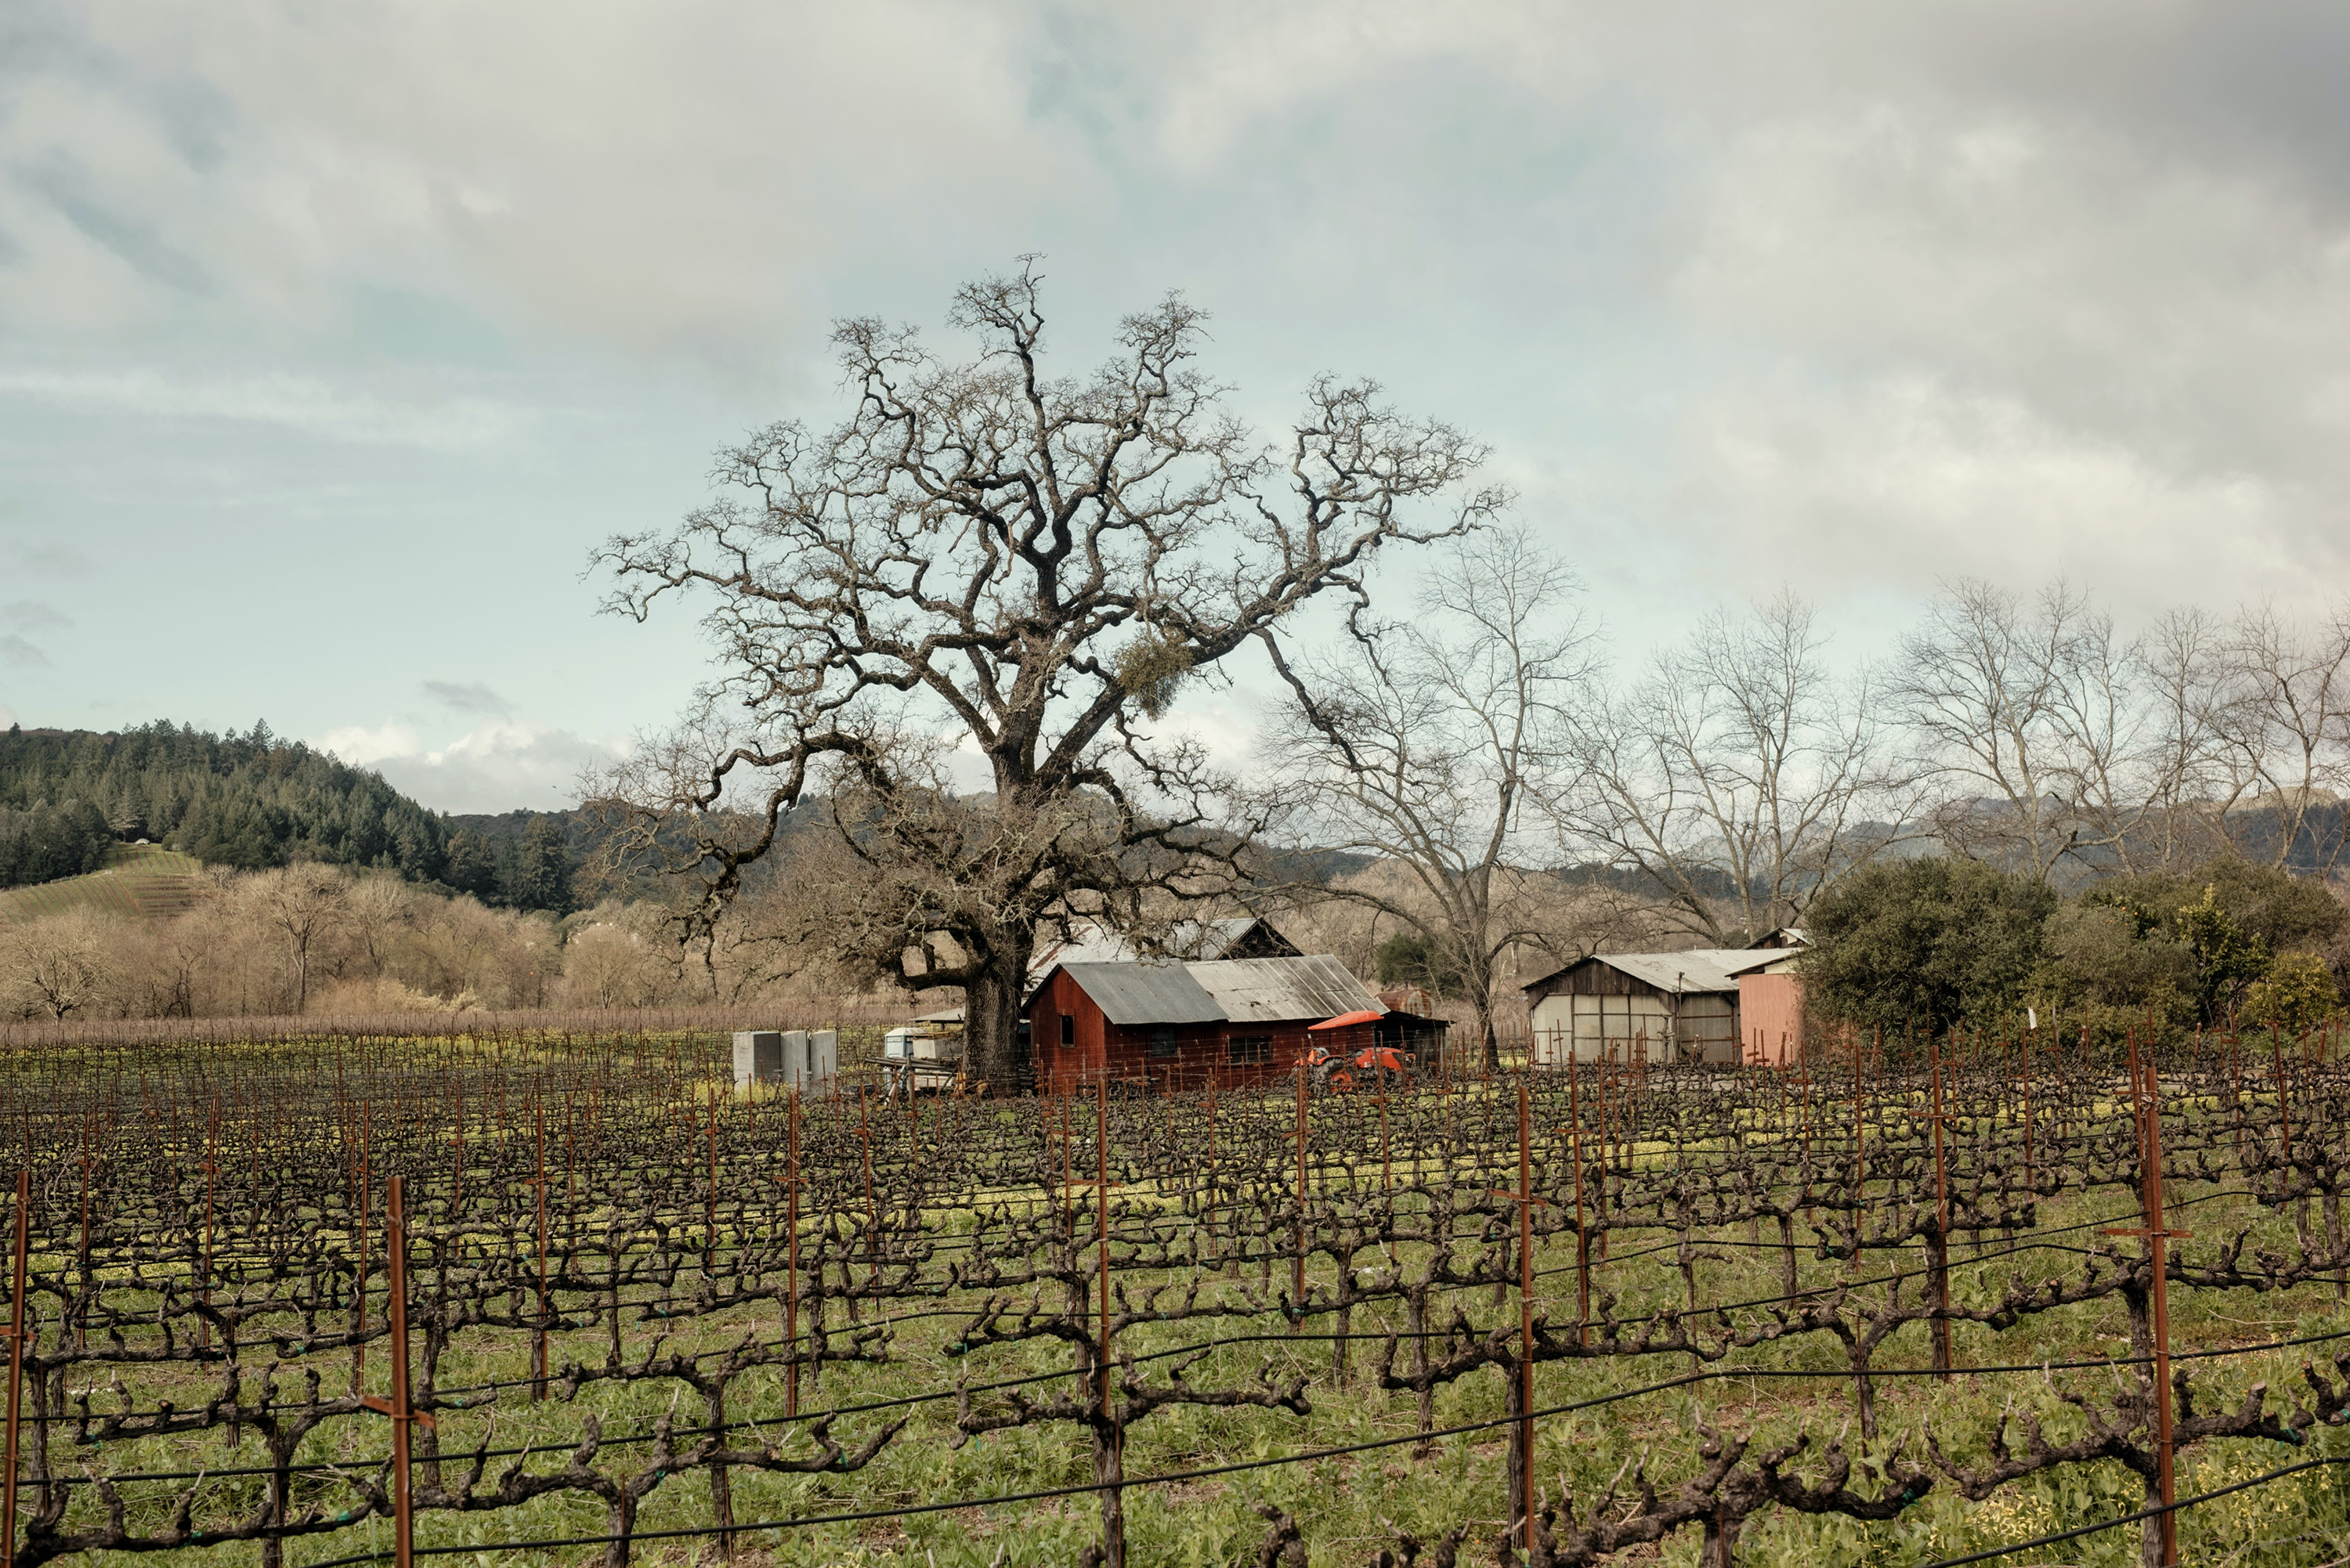 Anderson Valley is a quiet, heavily forested wine country between CA-101 and CA-1.